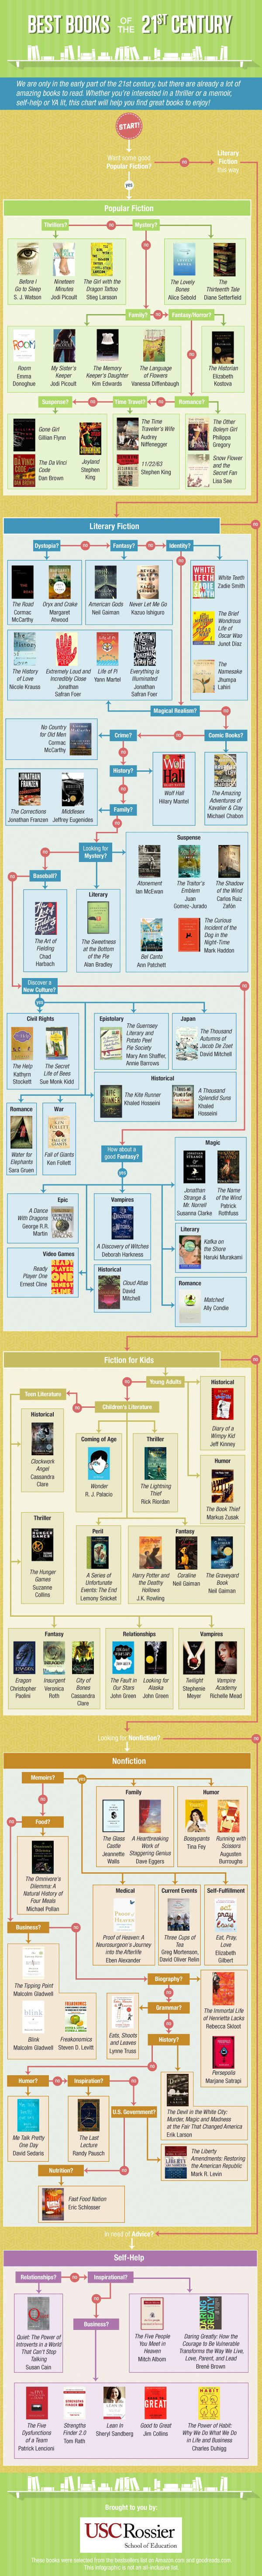 Infographic: Best Books Of The 21st Century...The Century has just begun, but many classic reads already!